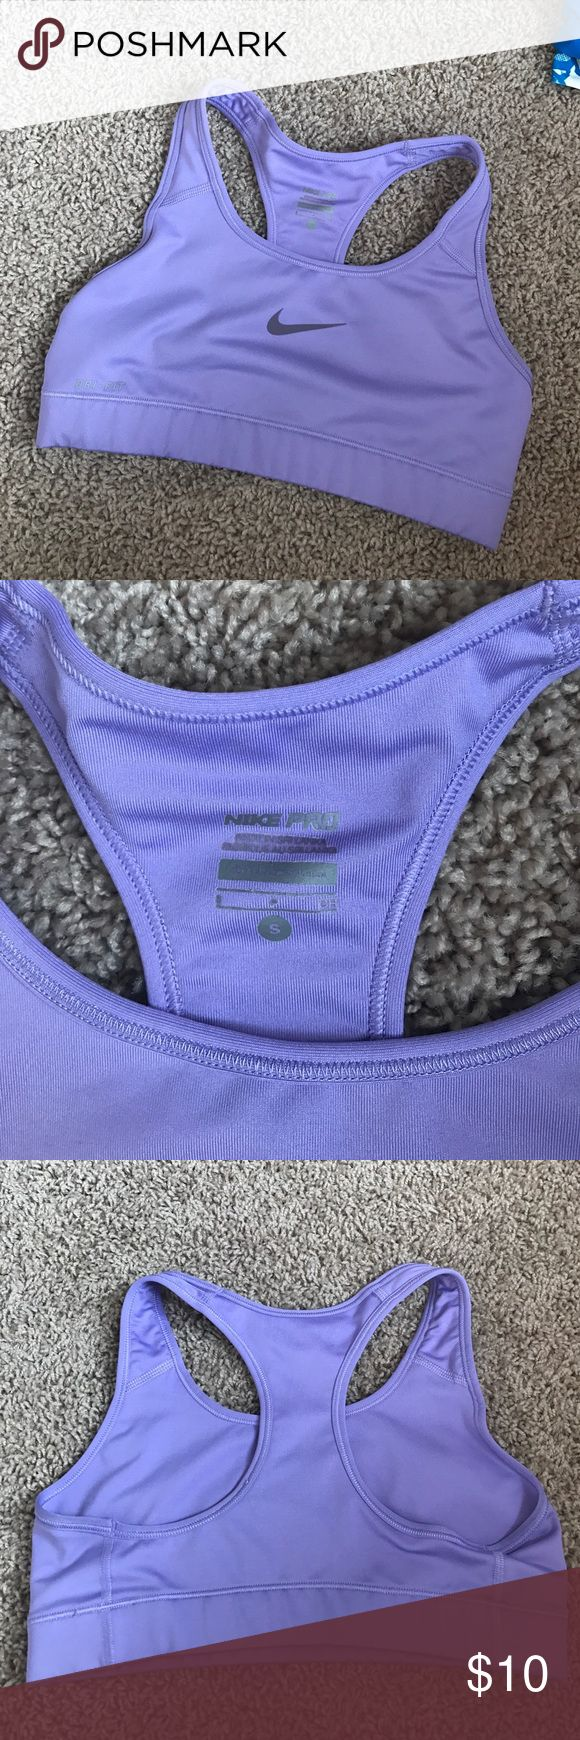 Nike Pro Women's Sports Bra Size small lavender Nike pro compression sports bra in size Small. Has been used but quality still looks and feels like new! Nike Intimates & Sleepwear Bras